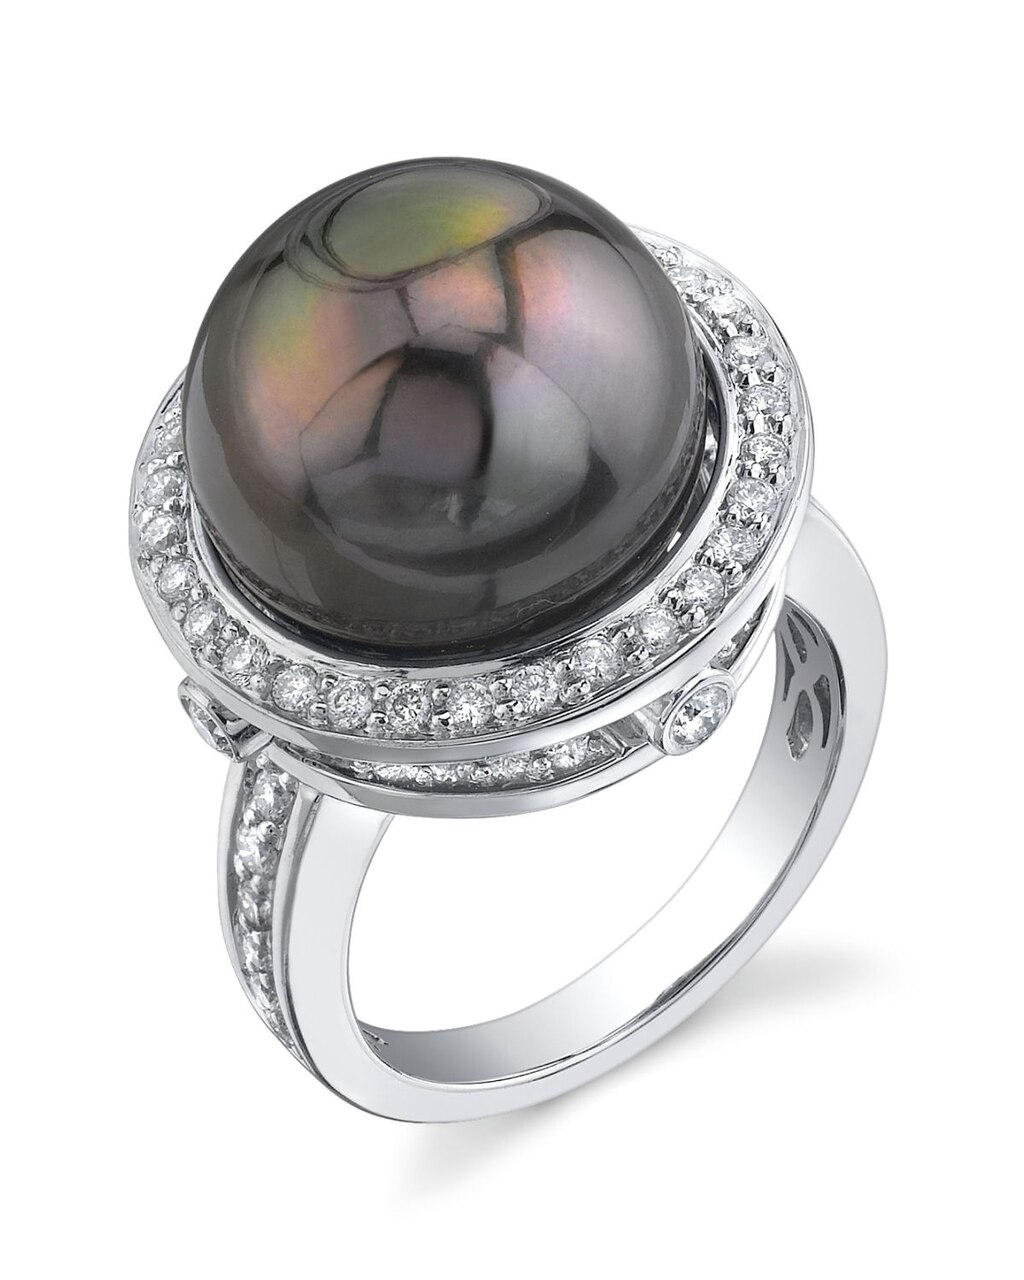 This exquisite ring features an 14.0-15.0mm Tahitian South Sea pearl, handpicked for its luminous luster